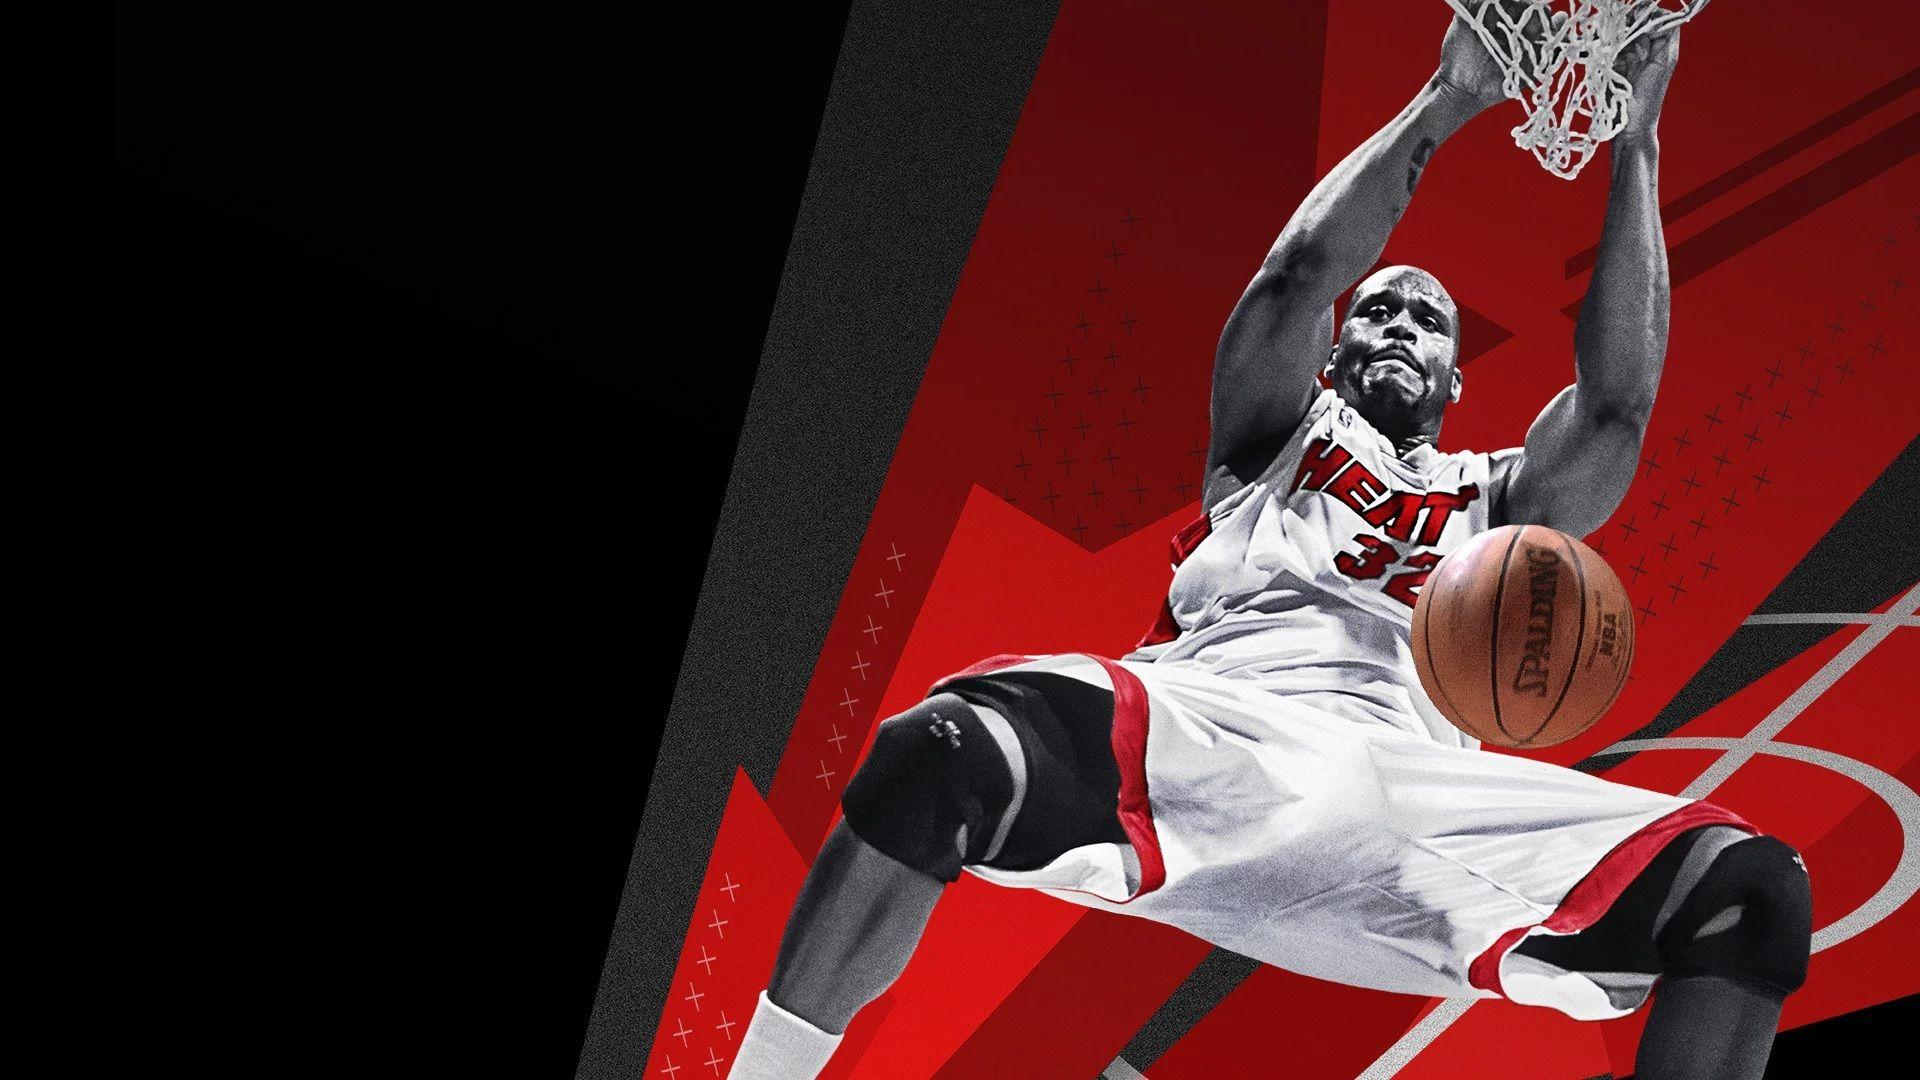 Nba Wallpapers Hd: NBA 2K18 HD Wallpapers